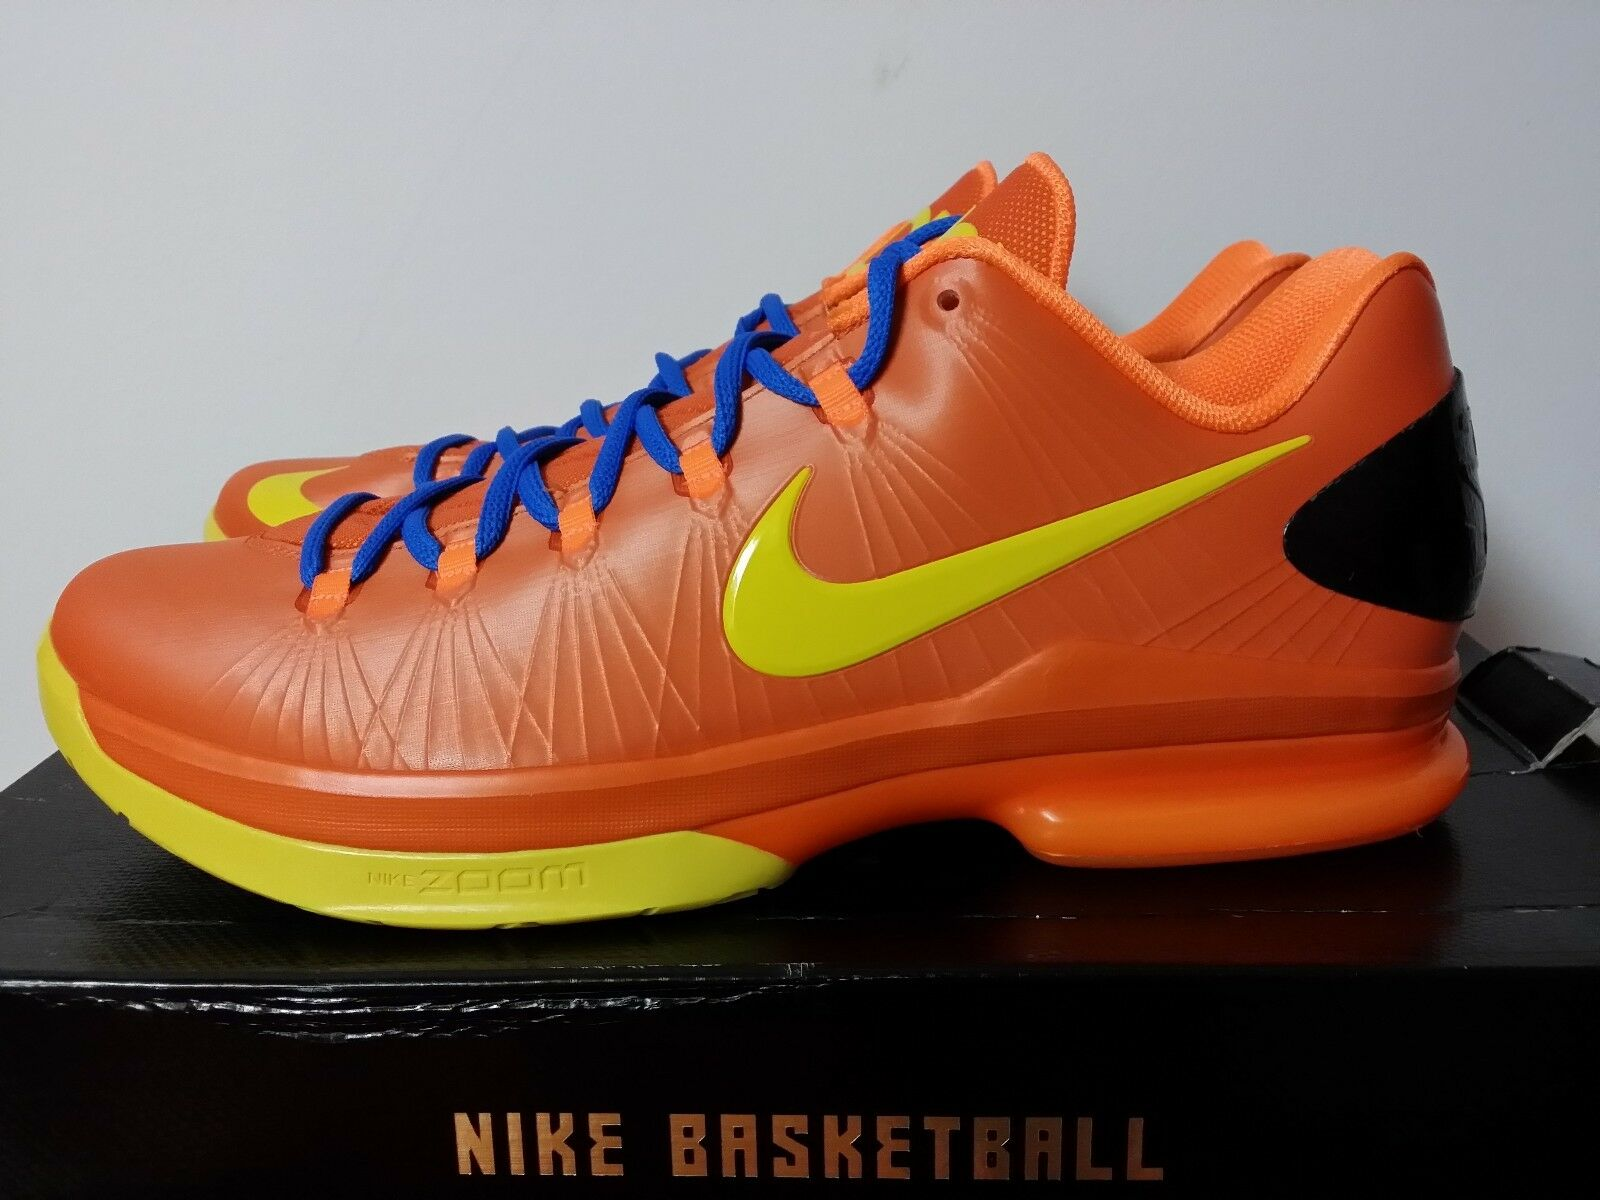 NEW NIKE KD V 5 ELITE SZ 11.5 12 orange Yellow bluee 585386-800 kevin durant X vi